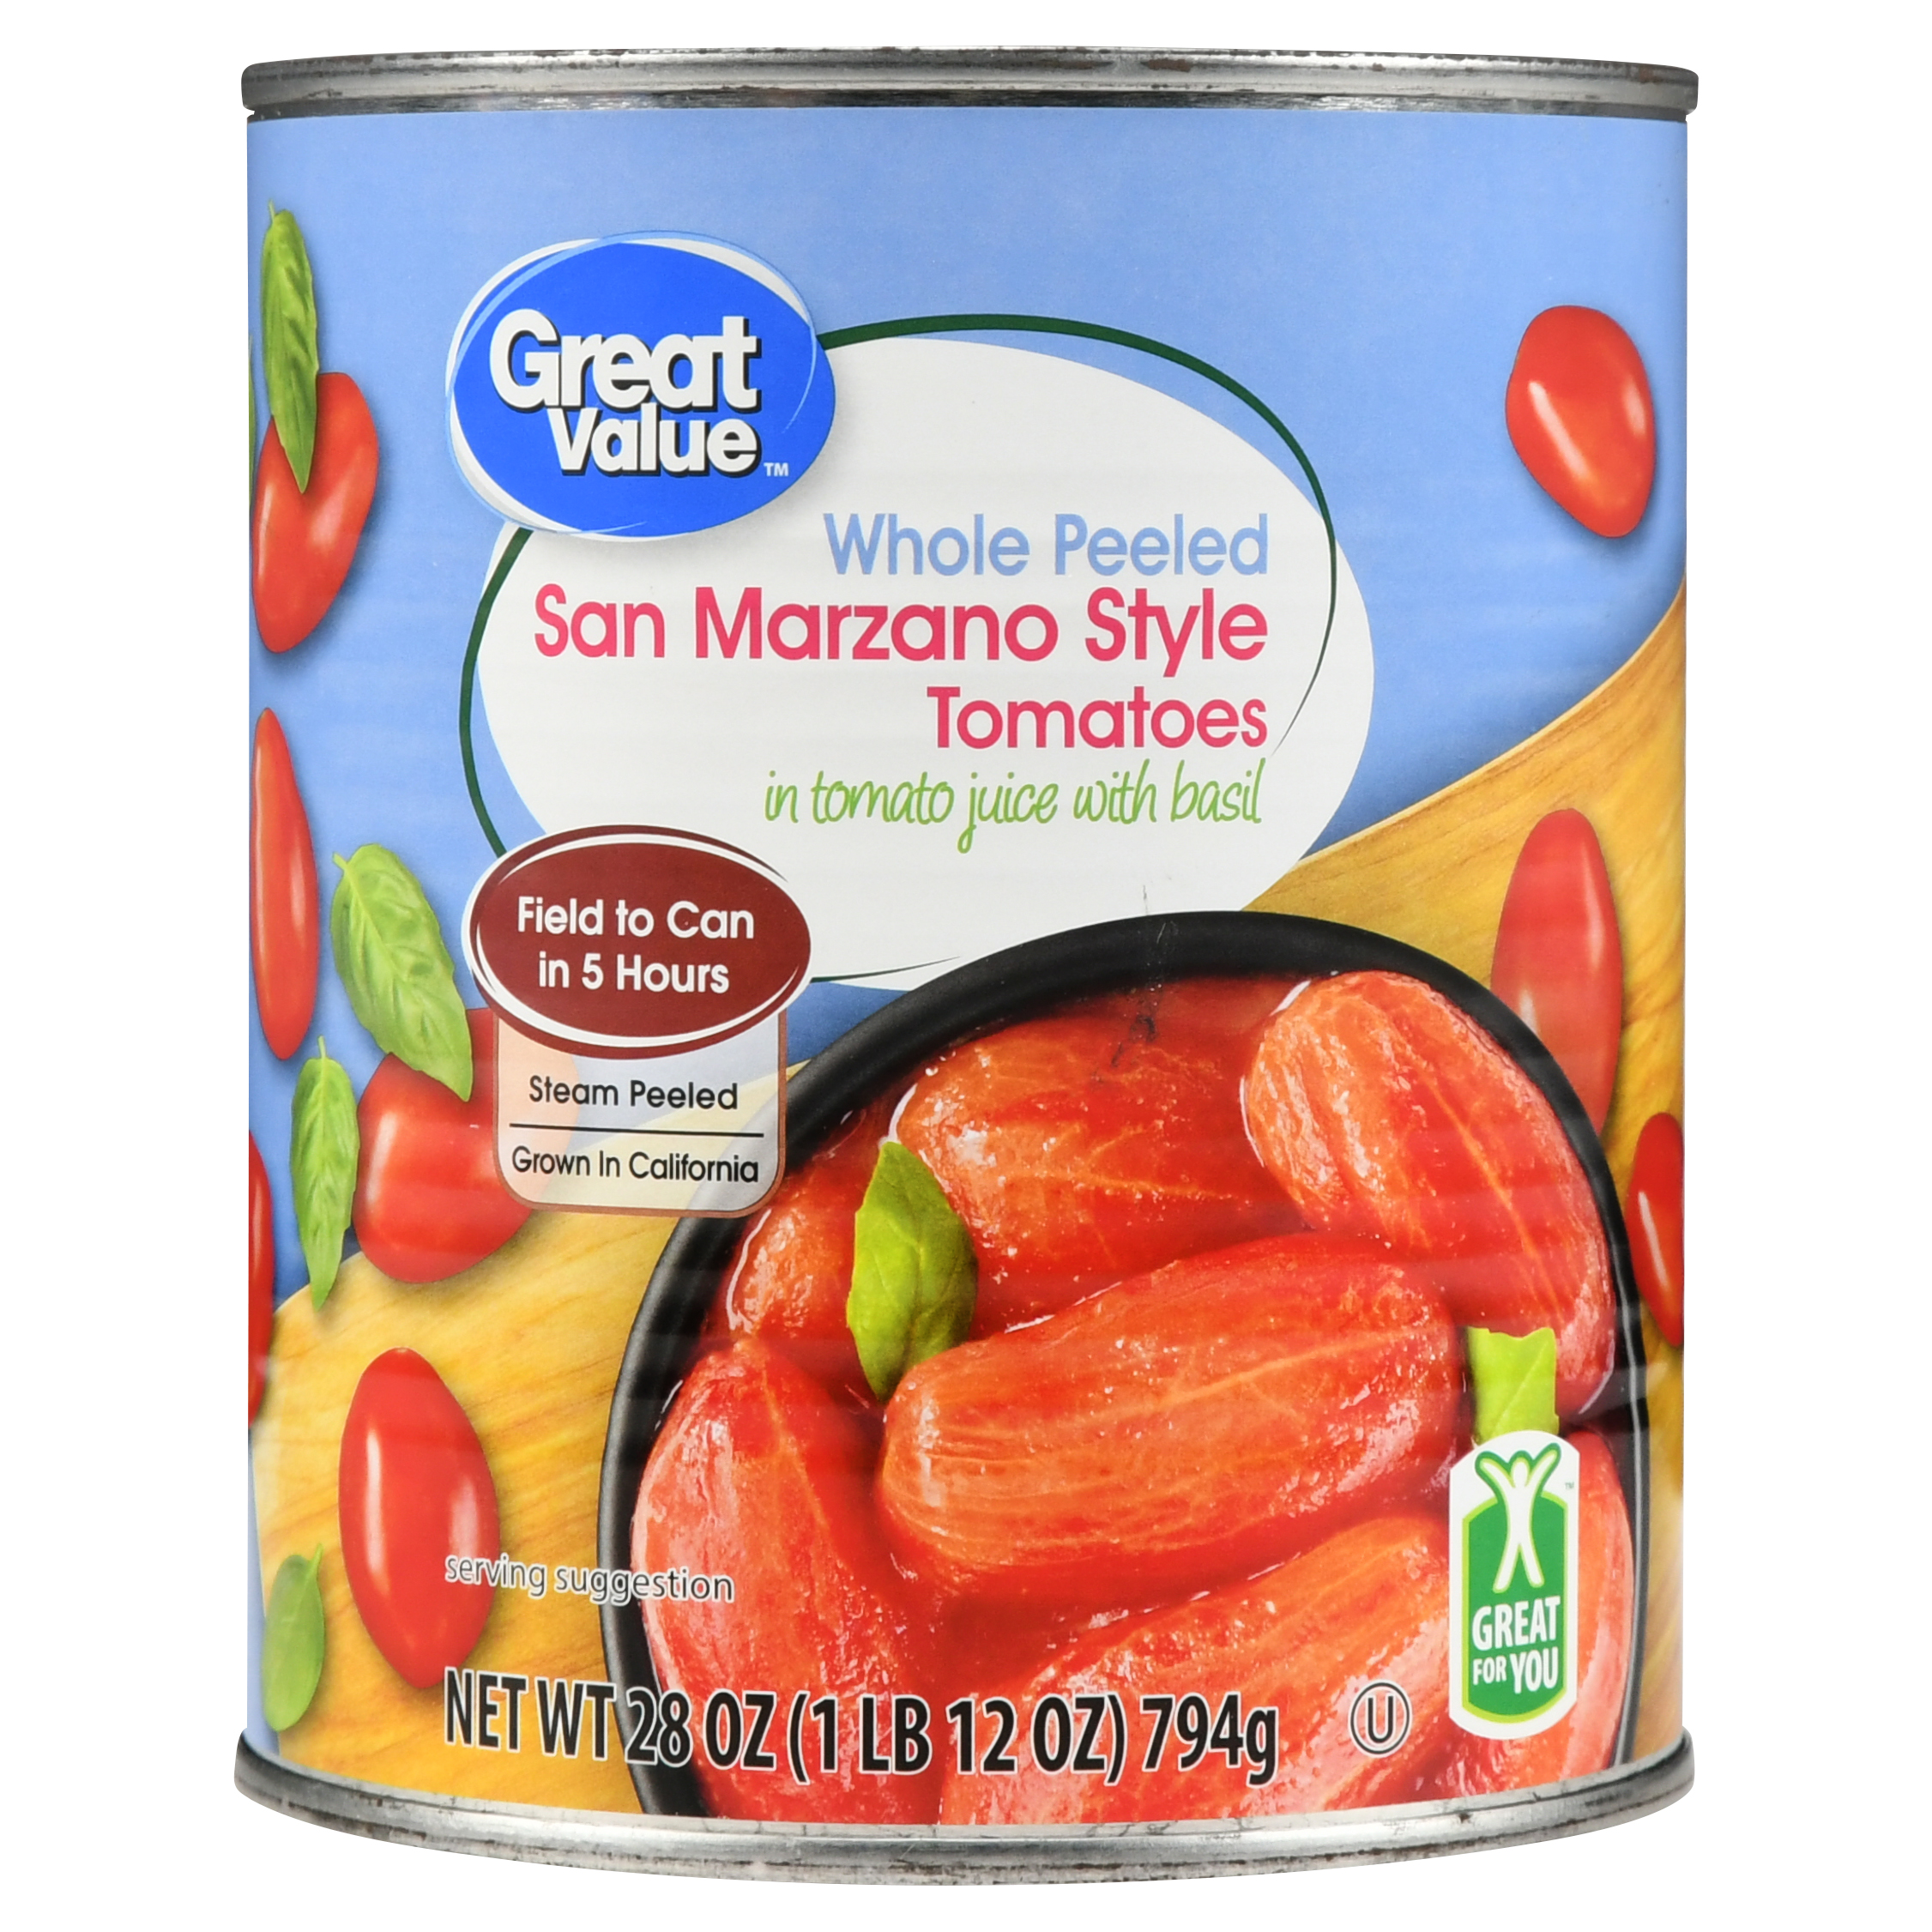 Great Value Whole Peeled Tomatoes, San Marzano Style, 28 oz